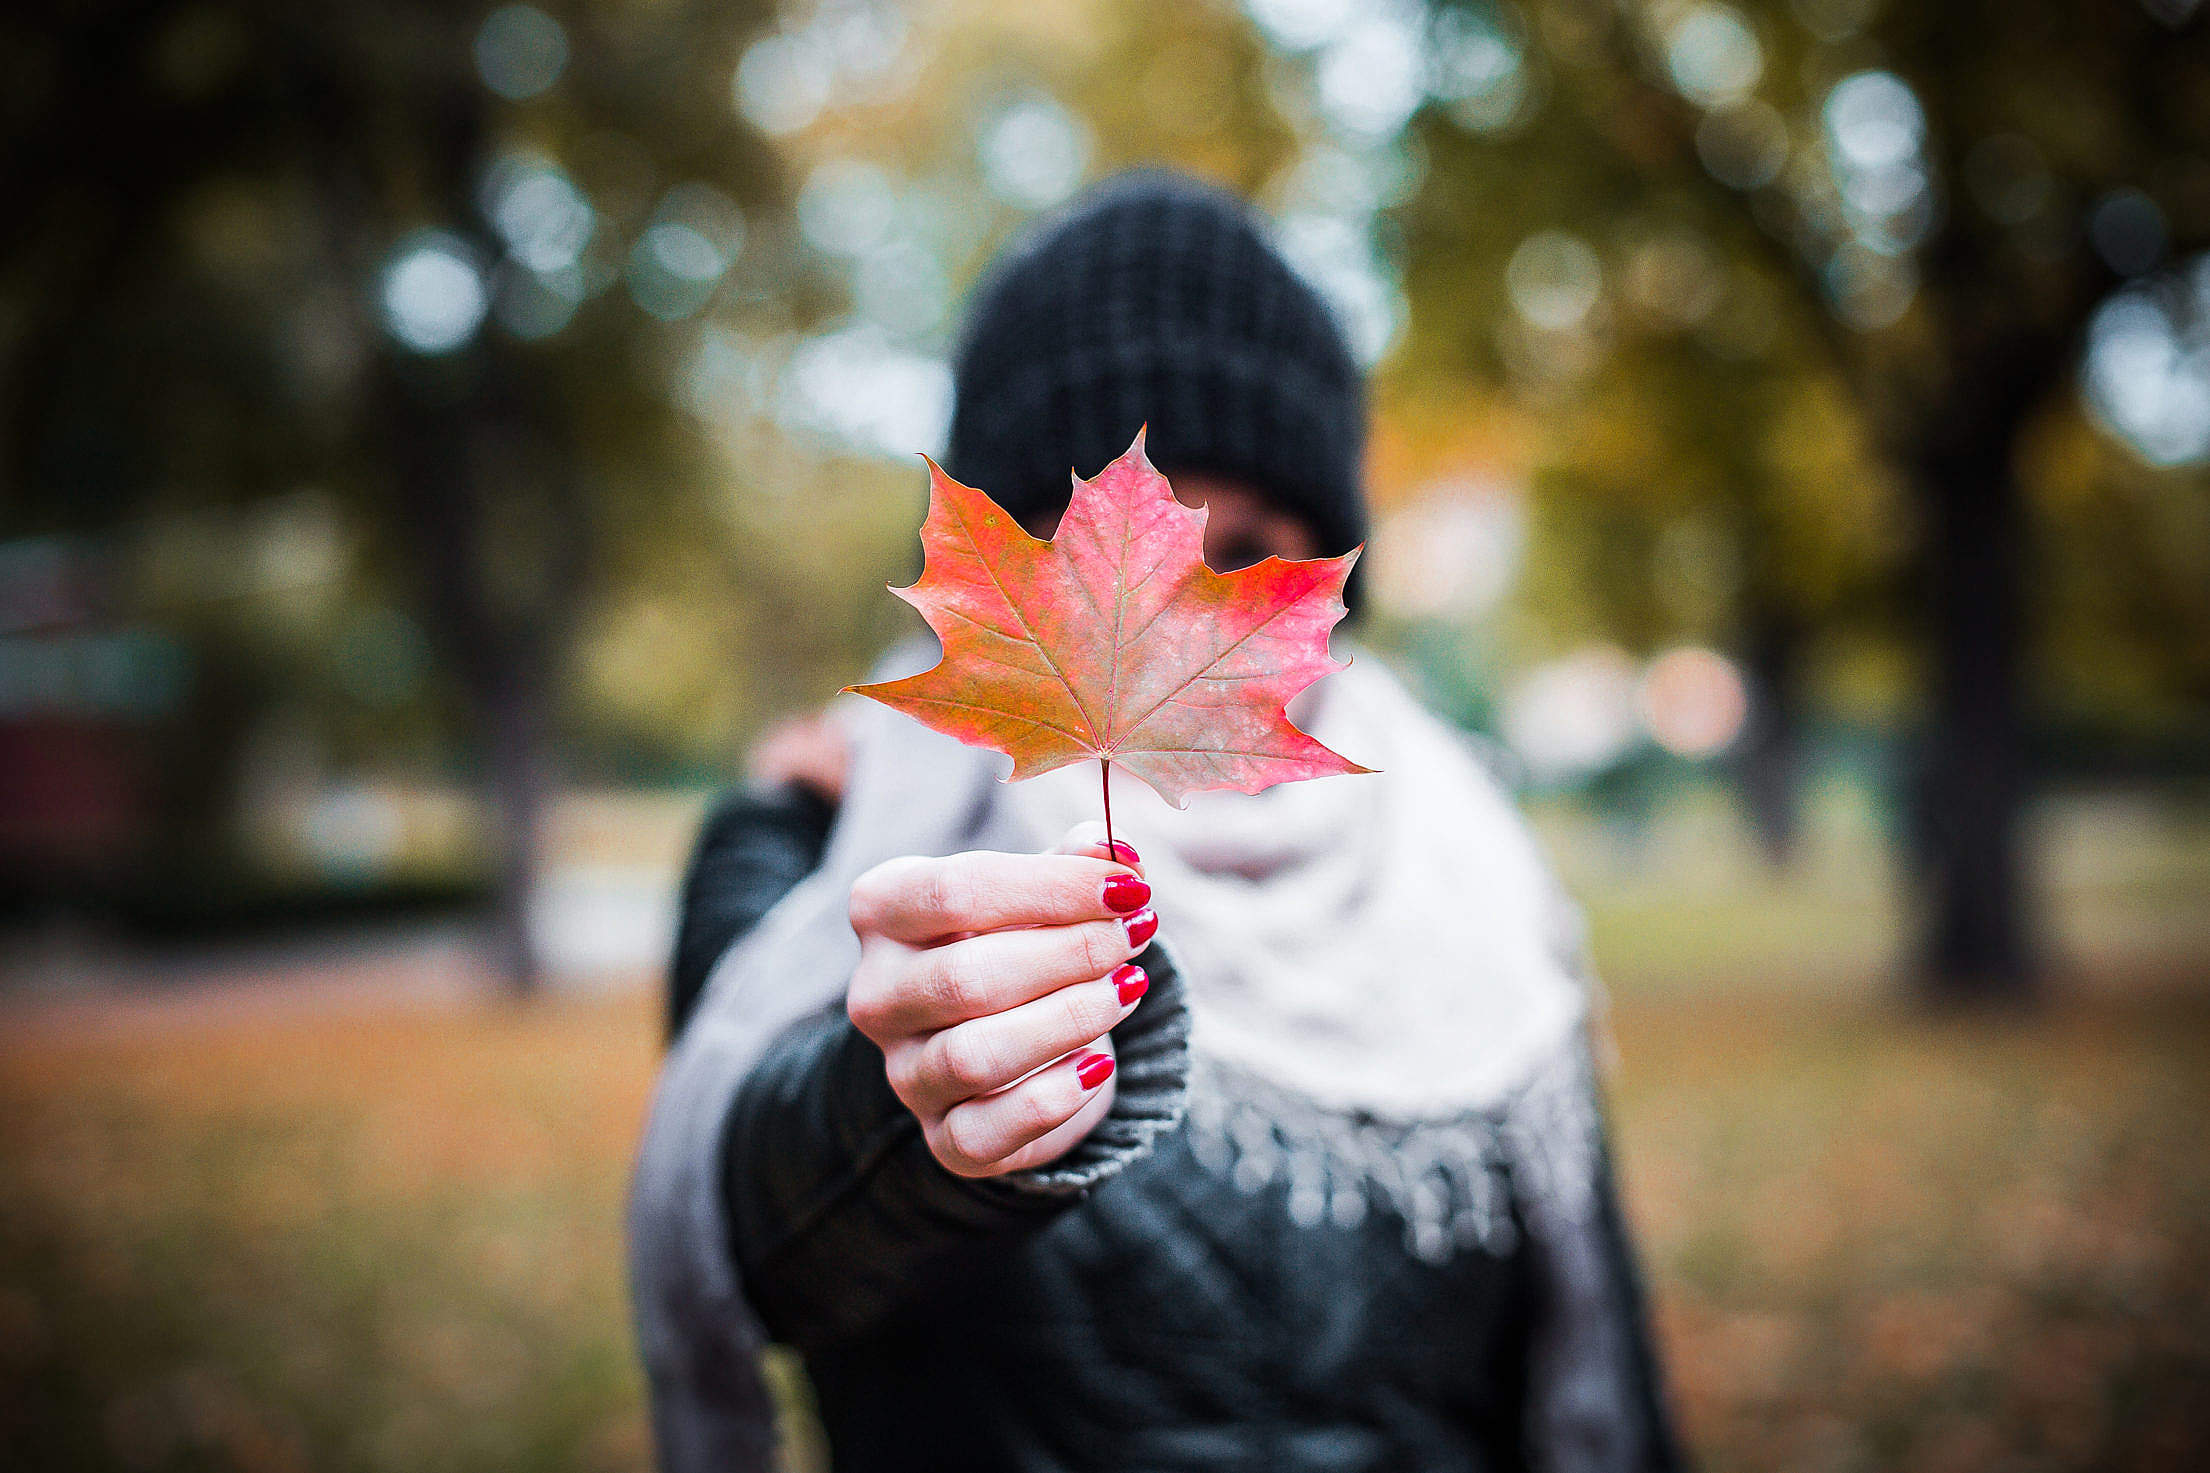 Young Girl Holding Autumn Colored Maple Leaf #2 Free Stock Photo